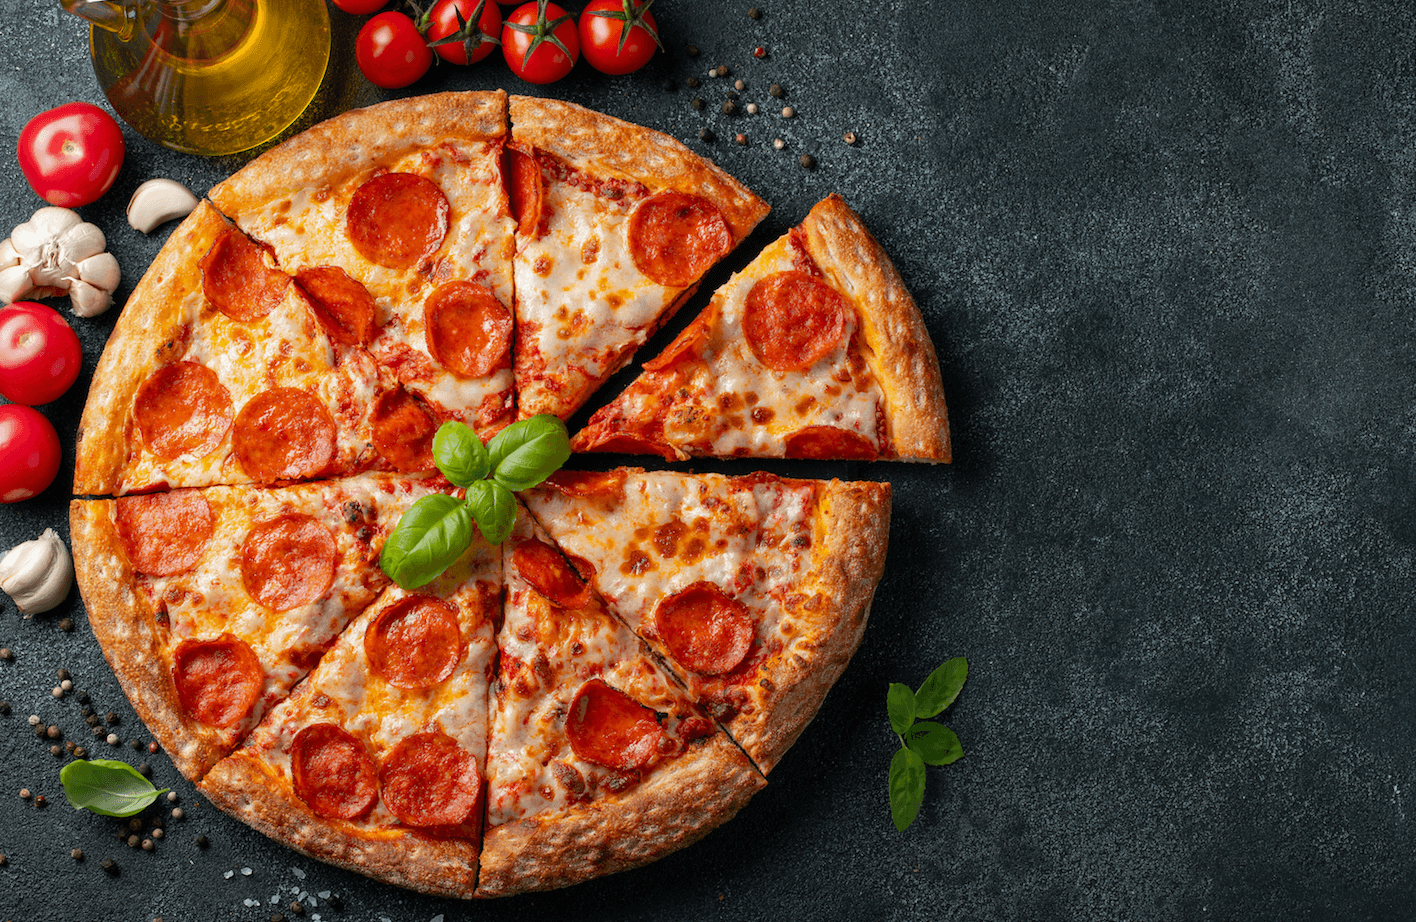 Union Wharf Residents: National Pizza Party Day is Just Around the Corner! - blog post image